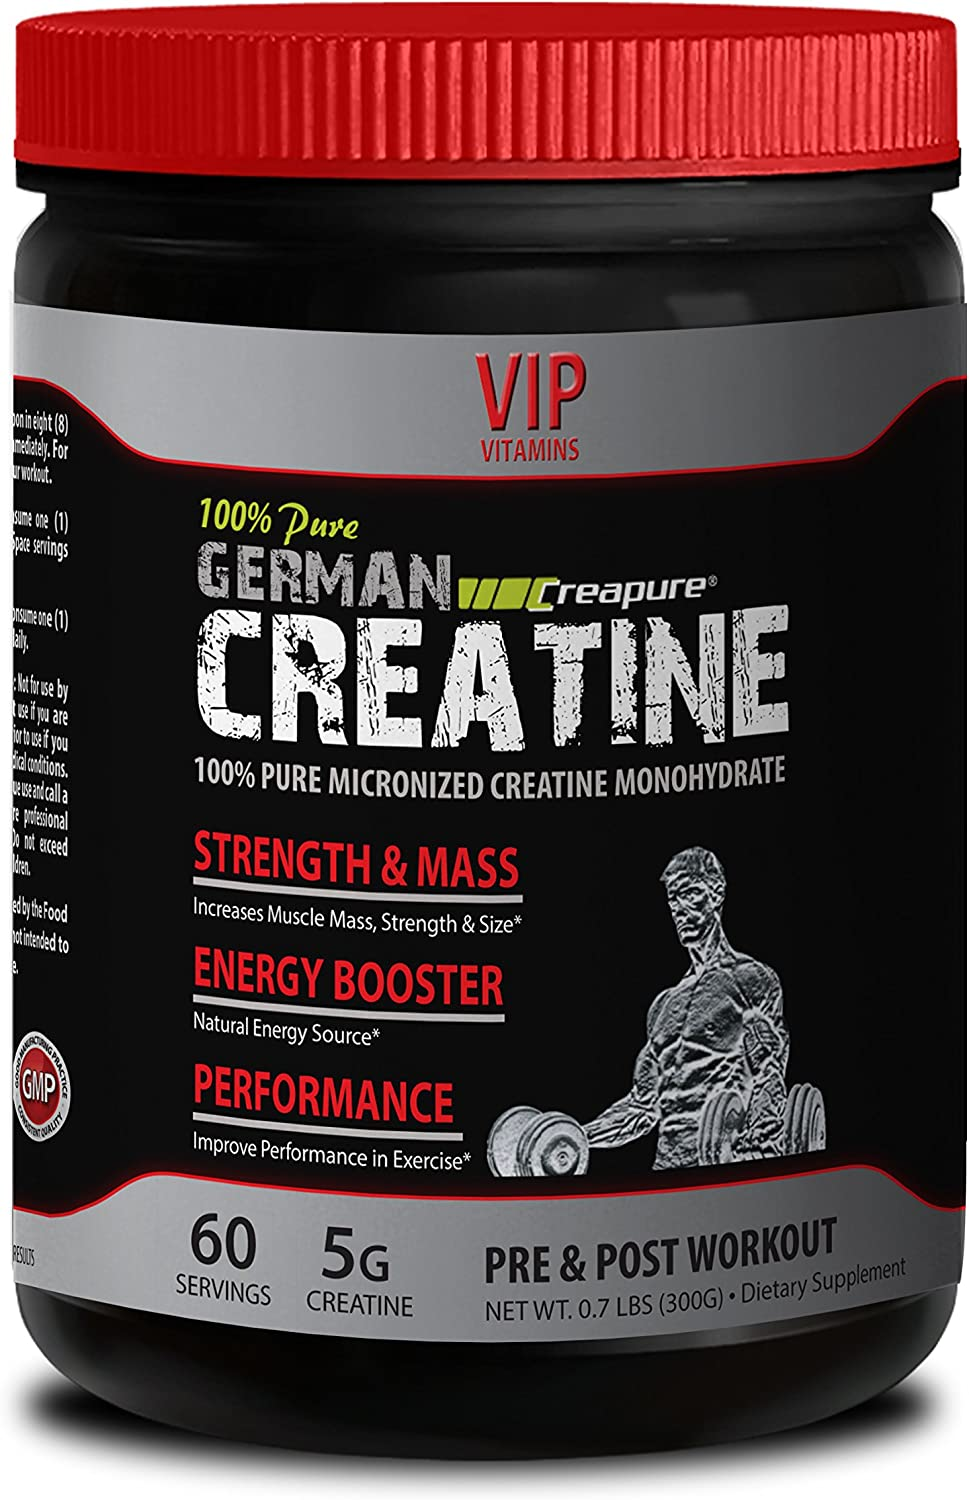 Amazon Com Bodybuilding Supplements For Men Maximum Strength German Creatine Creapure Creatine Workout Powder 1 Can 300g 60 Servings Health Personal Care